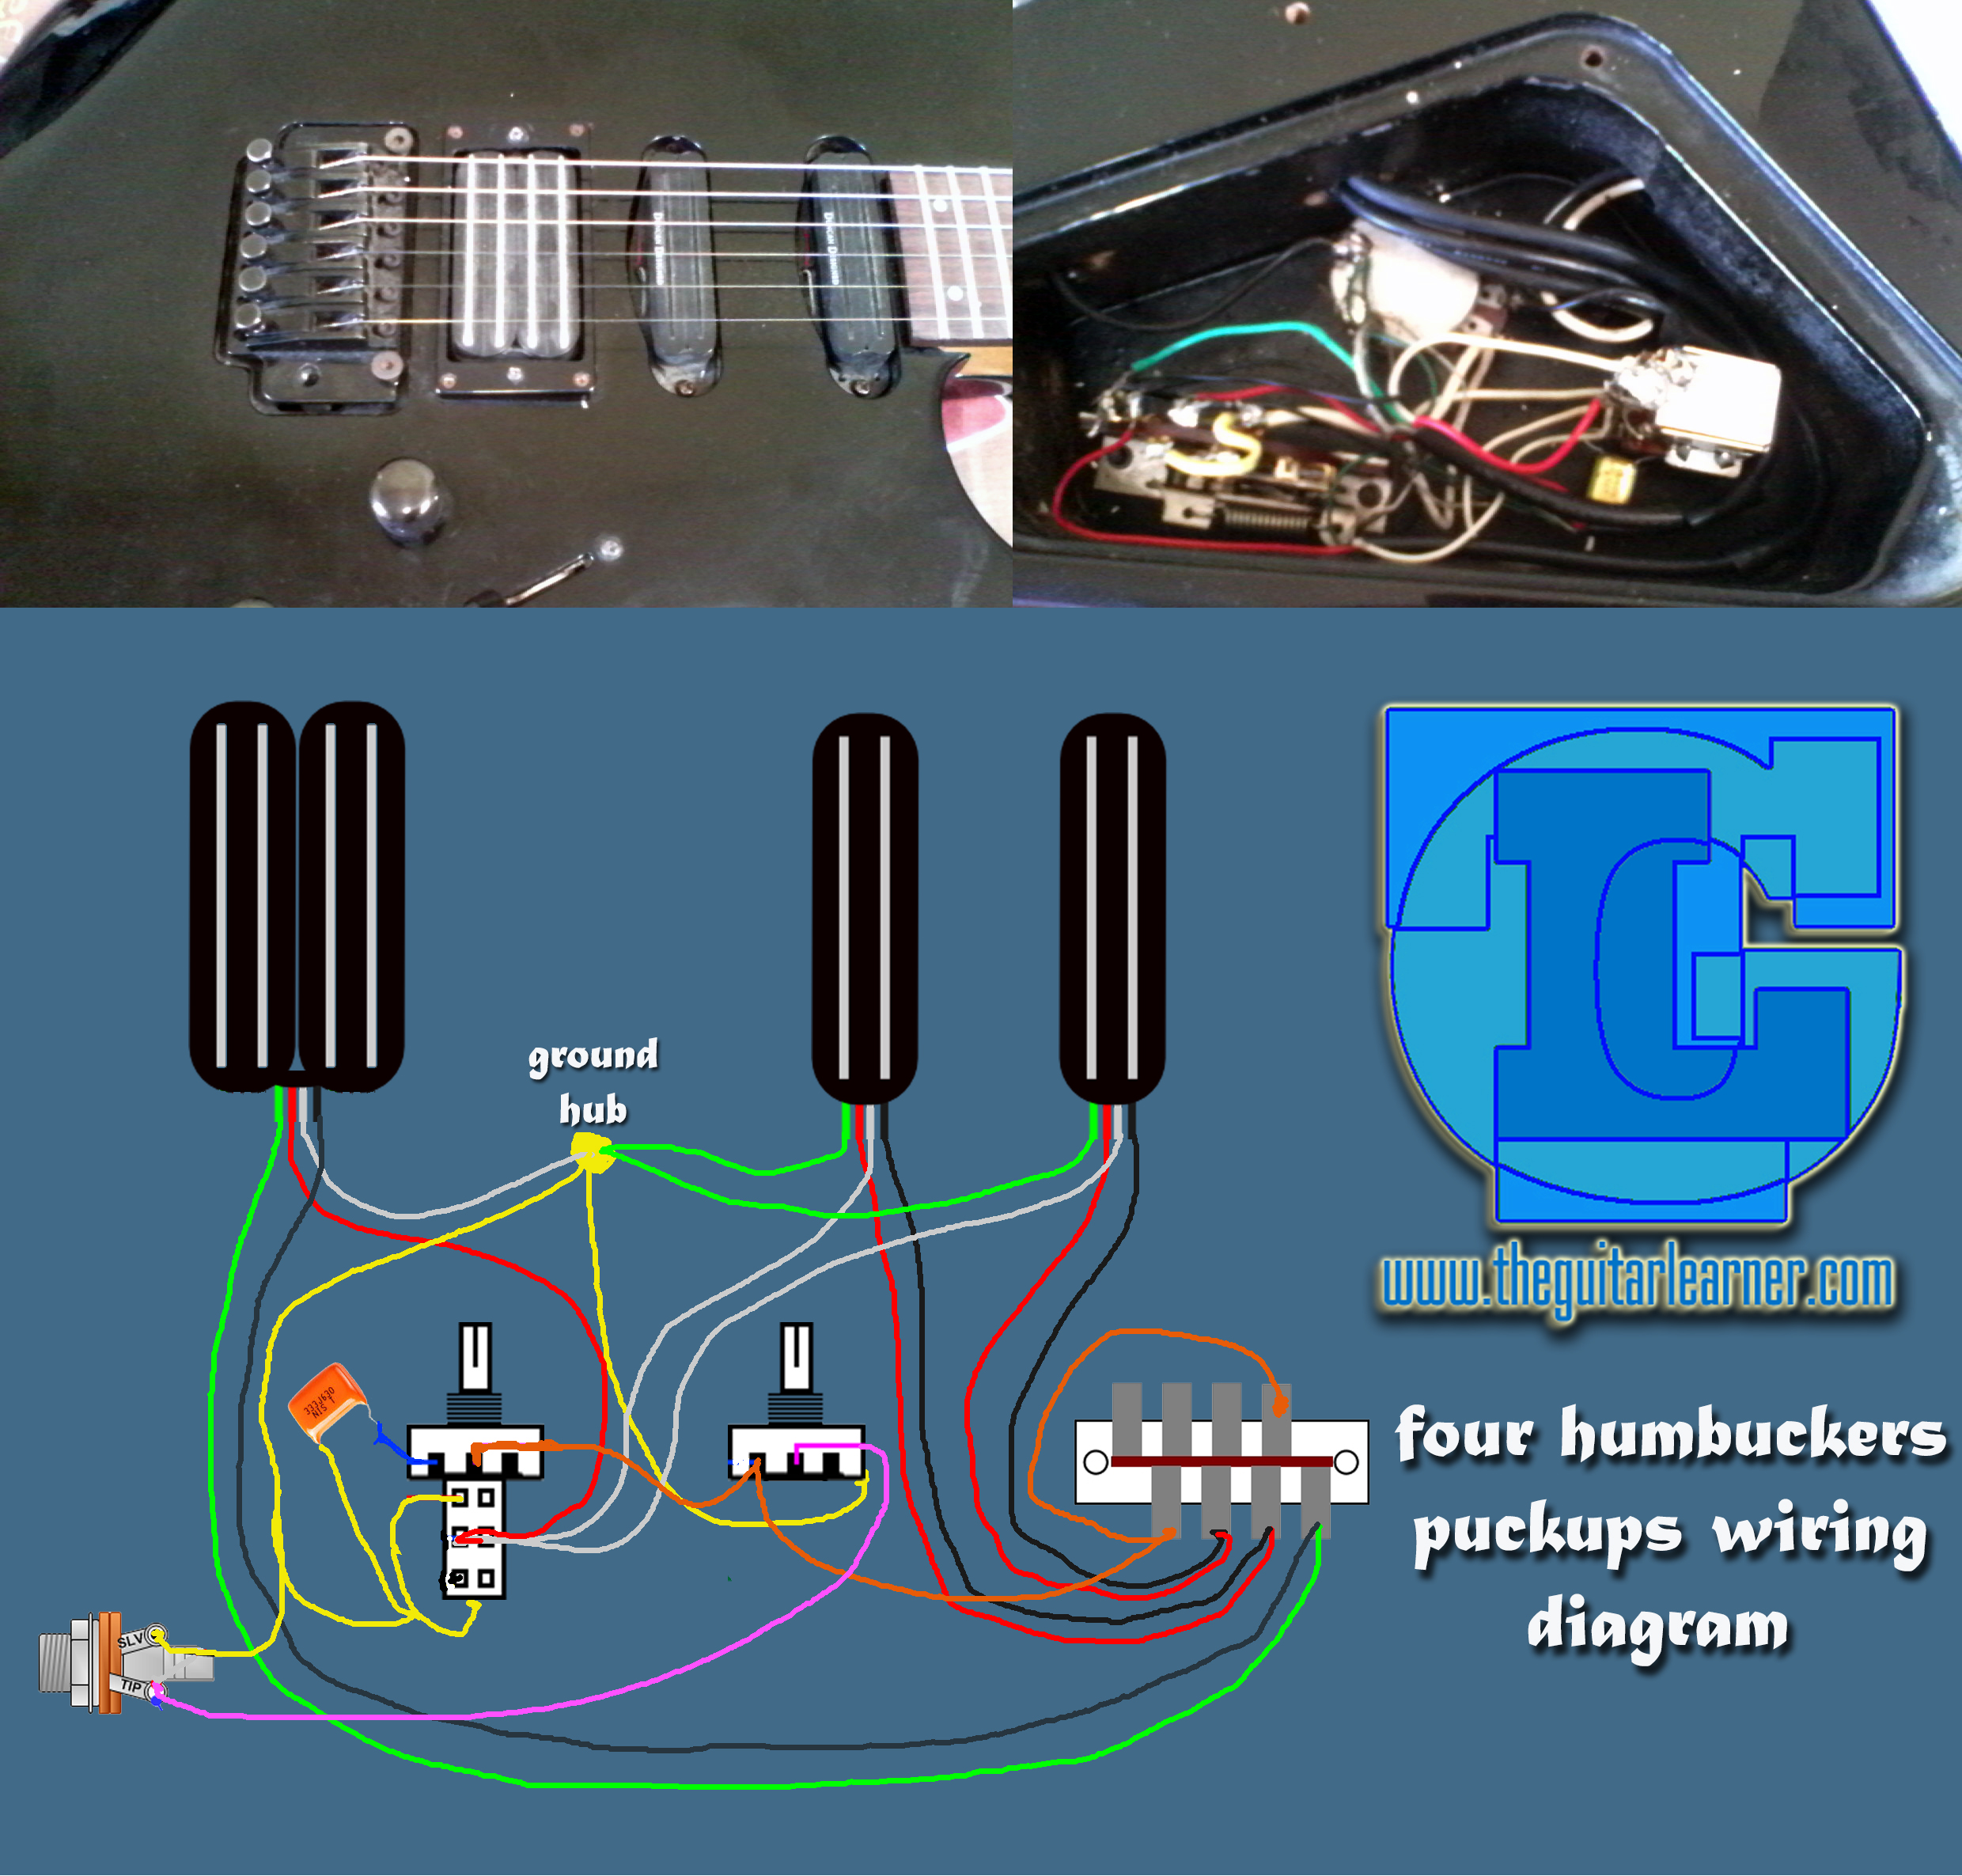 Four Humbuckers Pickup Wiring Diagram Hotrails And Quadrail Blackout Wiring  Diagram Hot Rails Wiring Diagram